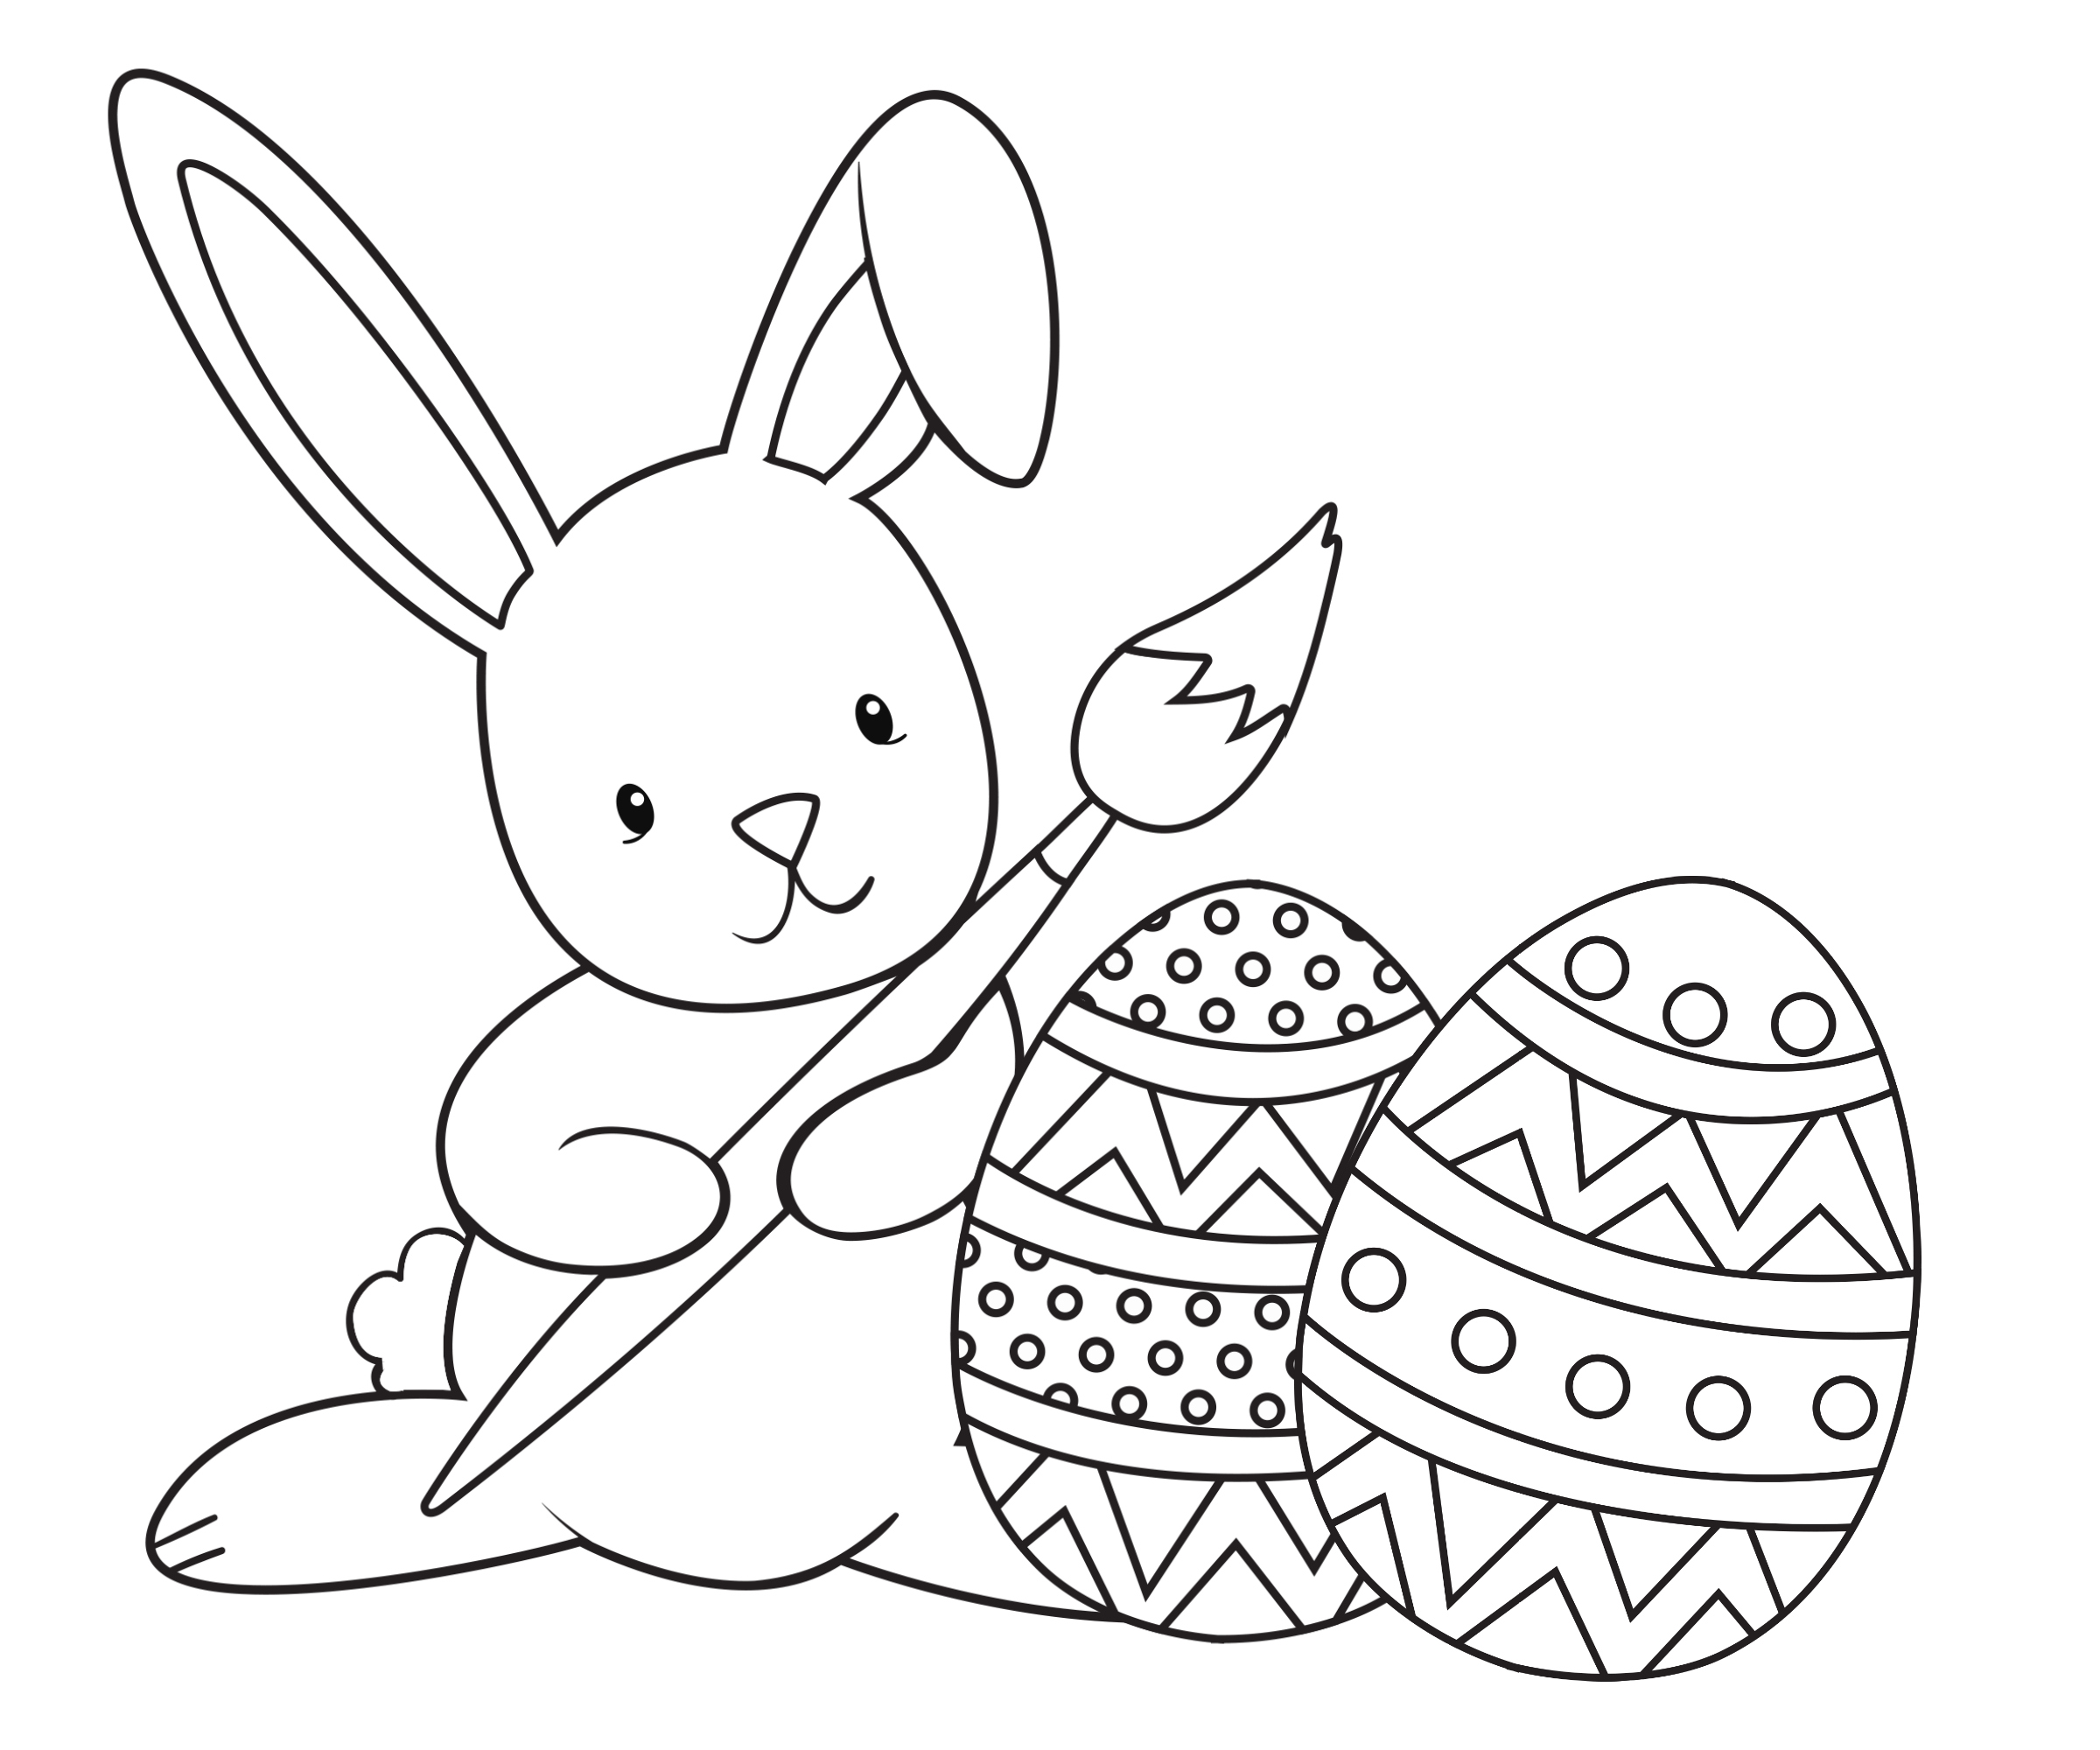 Easter Coloring Pages for Kids Crazy Little Projects Download Of Easter Coloring Printable Easter Coloring Pages Coloring Gallery